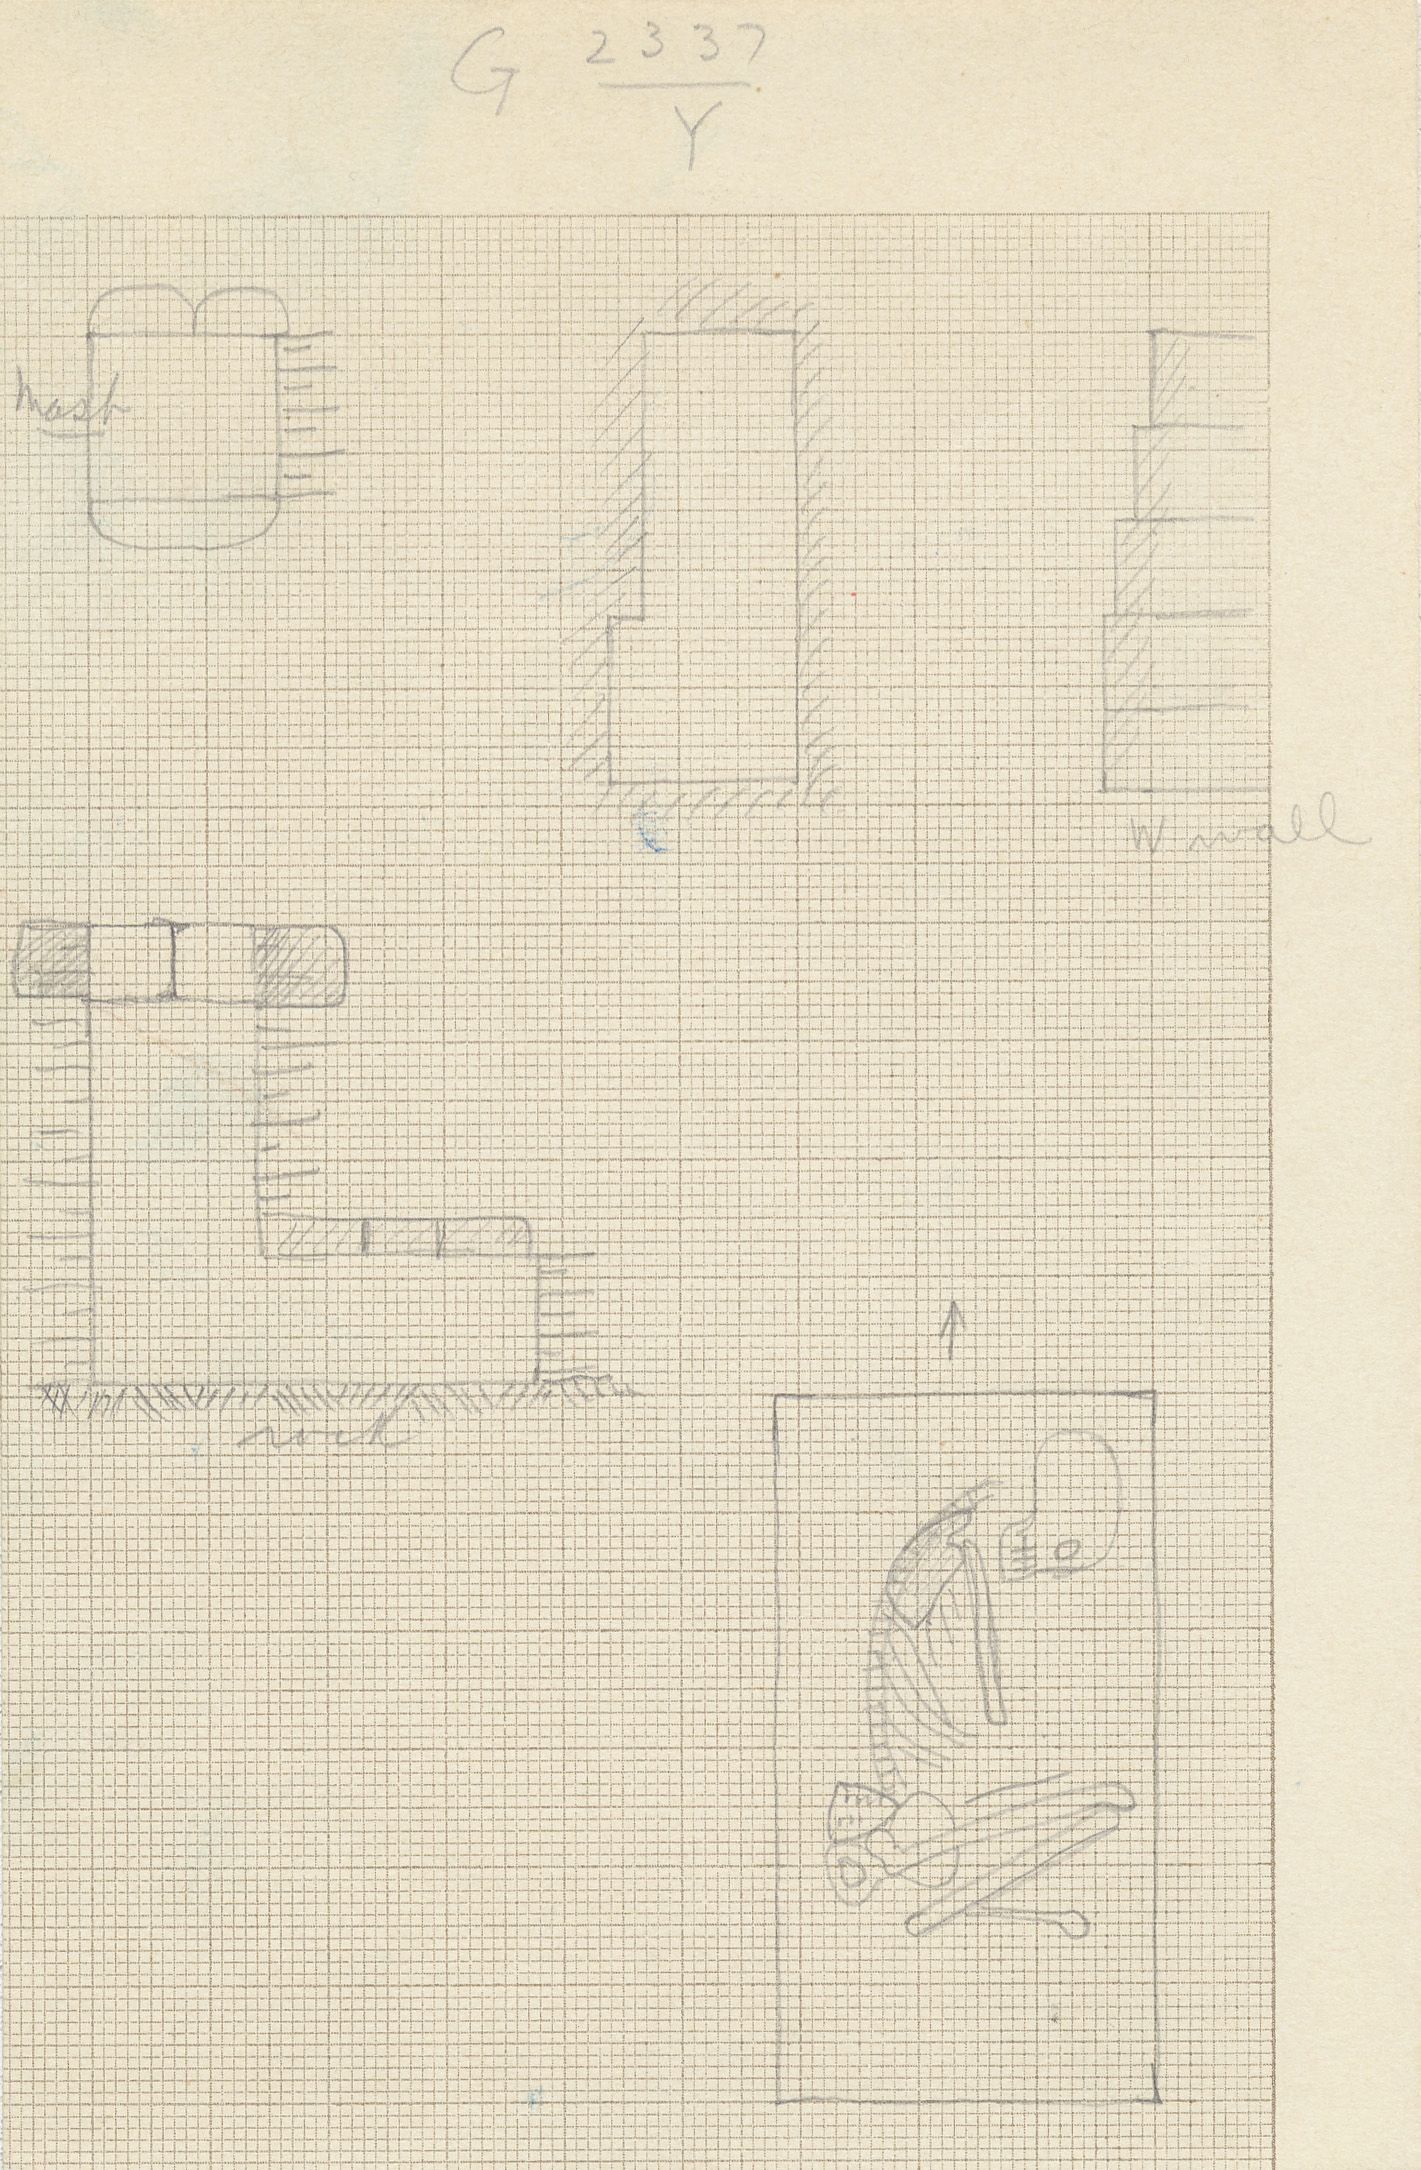 Maps and plans: G 2337, Shaft Y